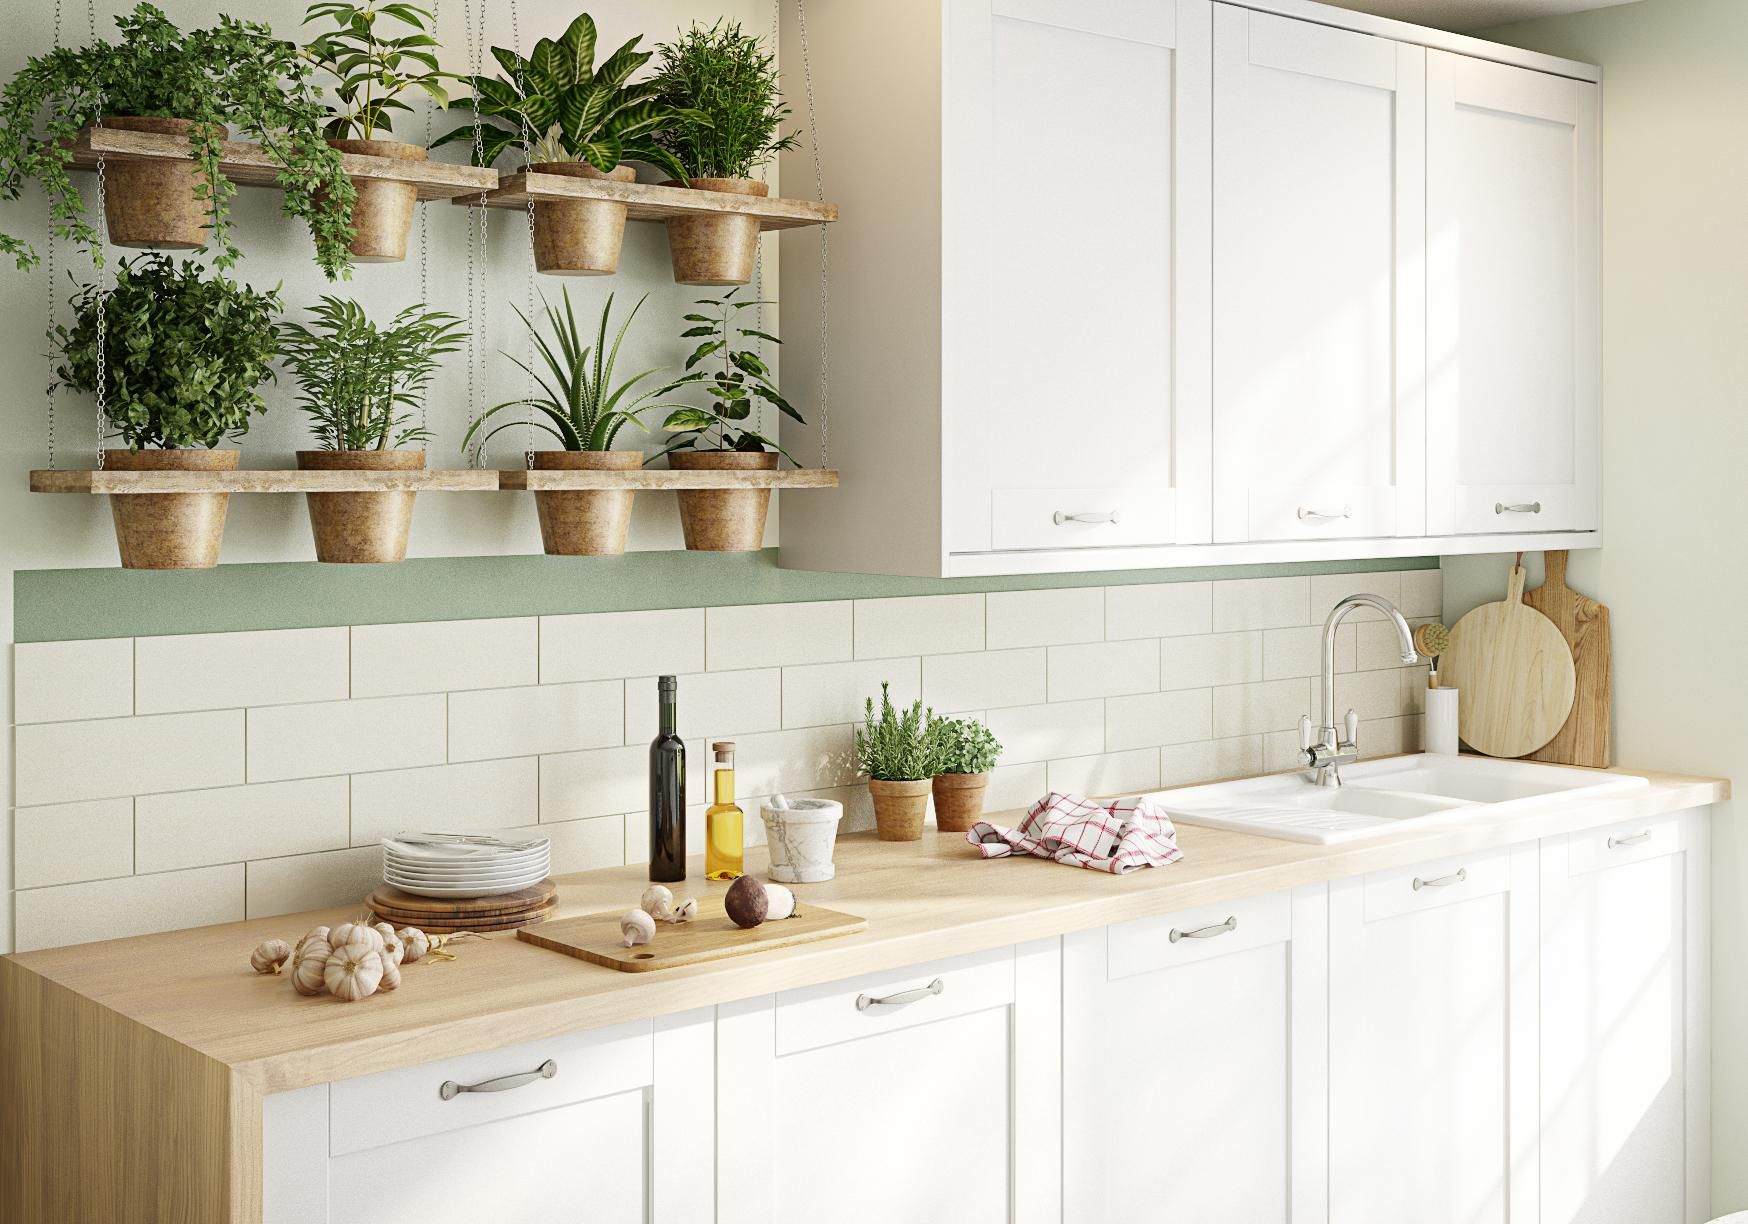 B&q Kitchen Kitchen Cabinet Doors Buying Guide Ideas Advice Diy At B Q